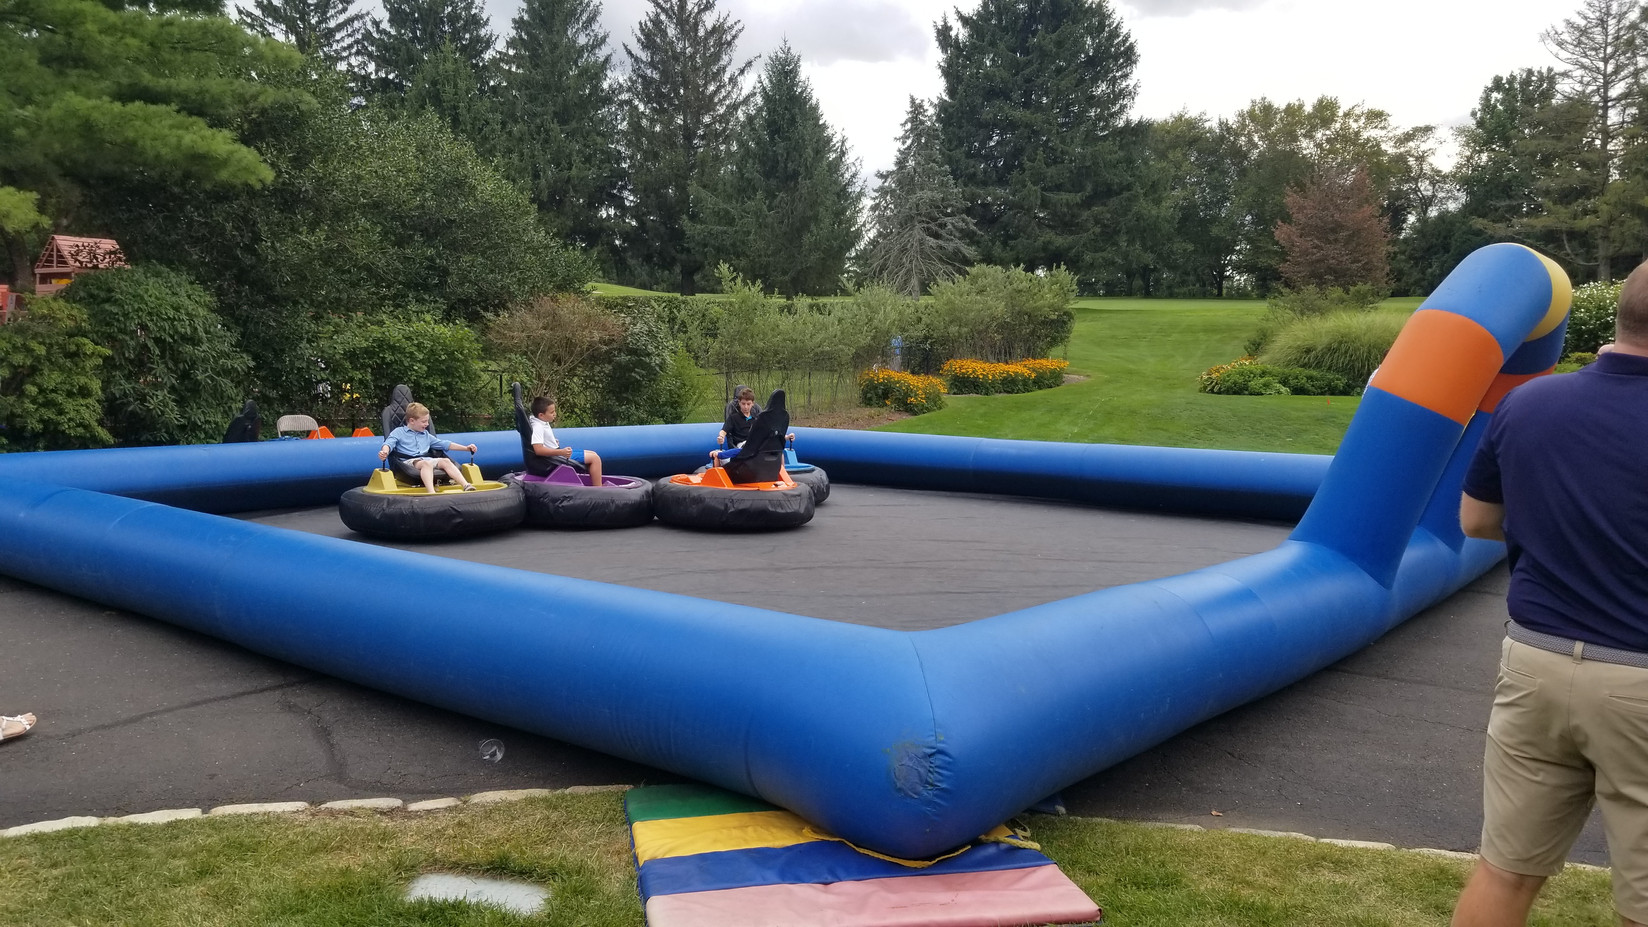 Bumper-Cars-In-Inflatable-Ring.jpg